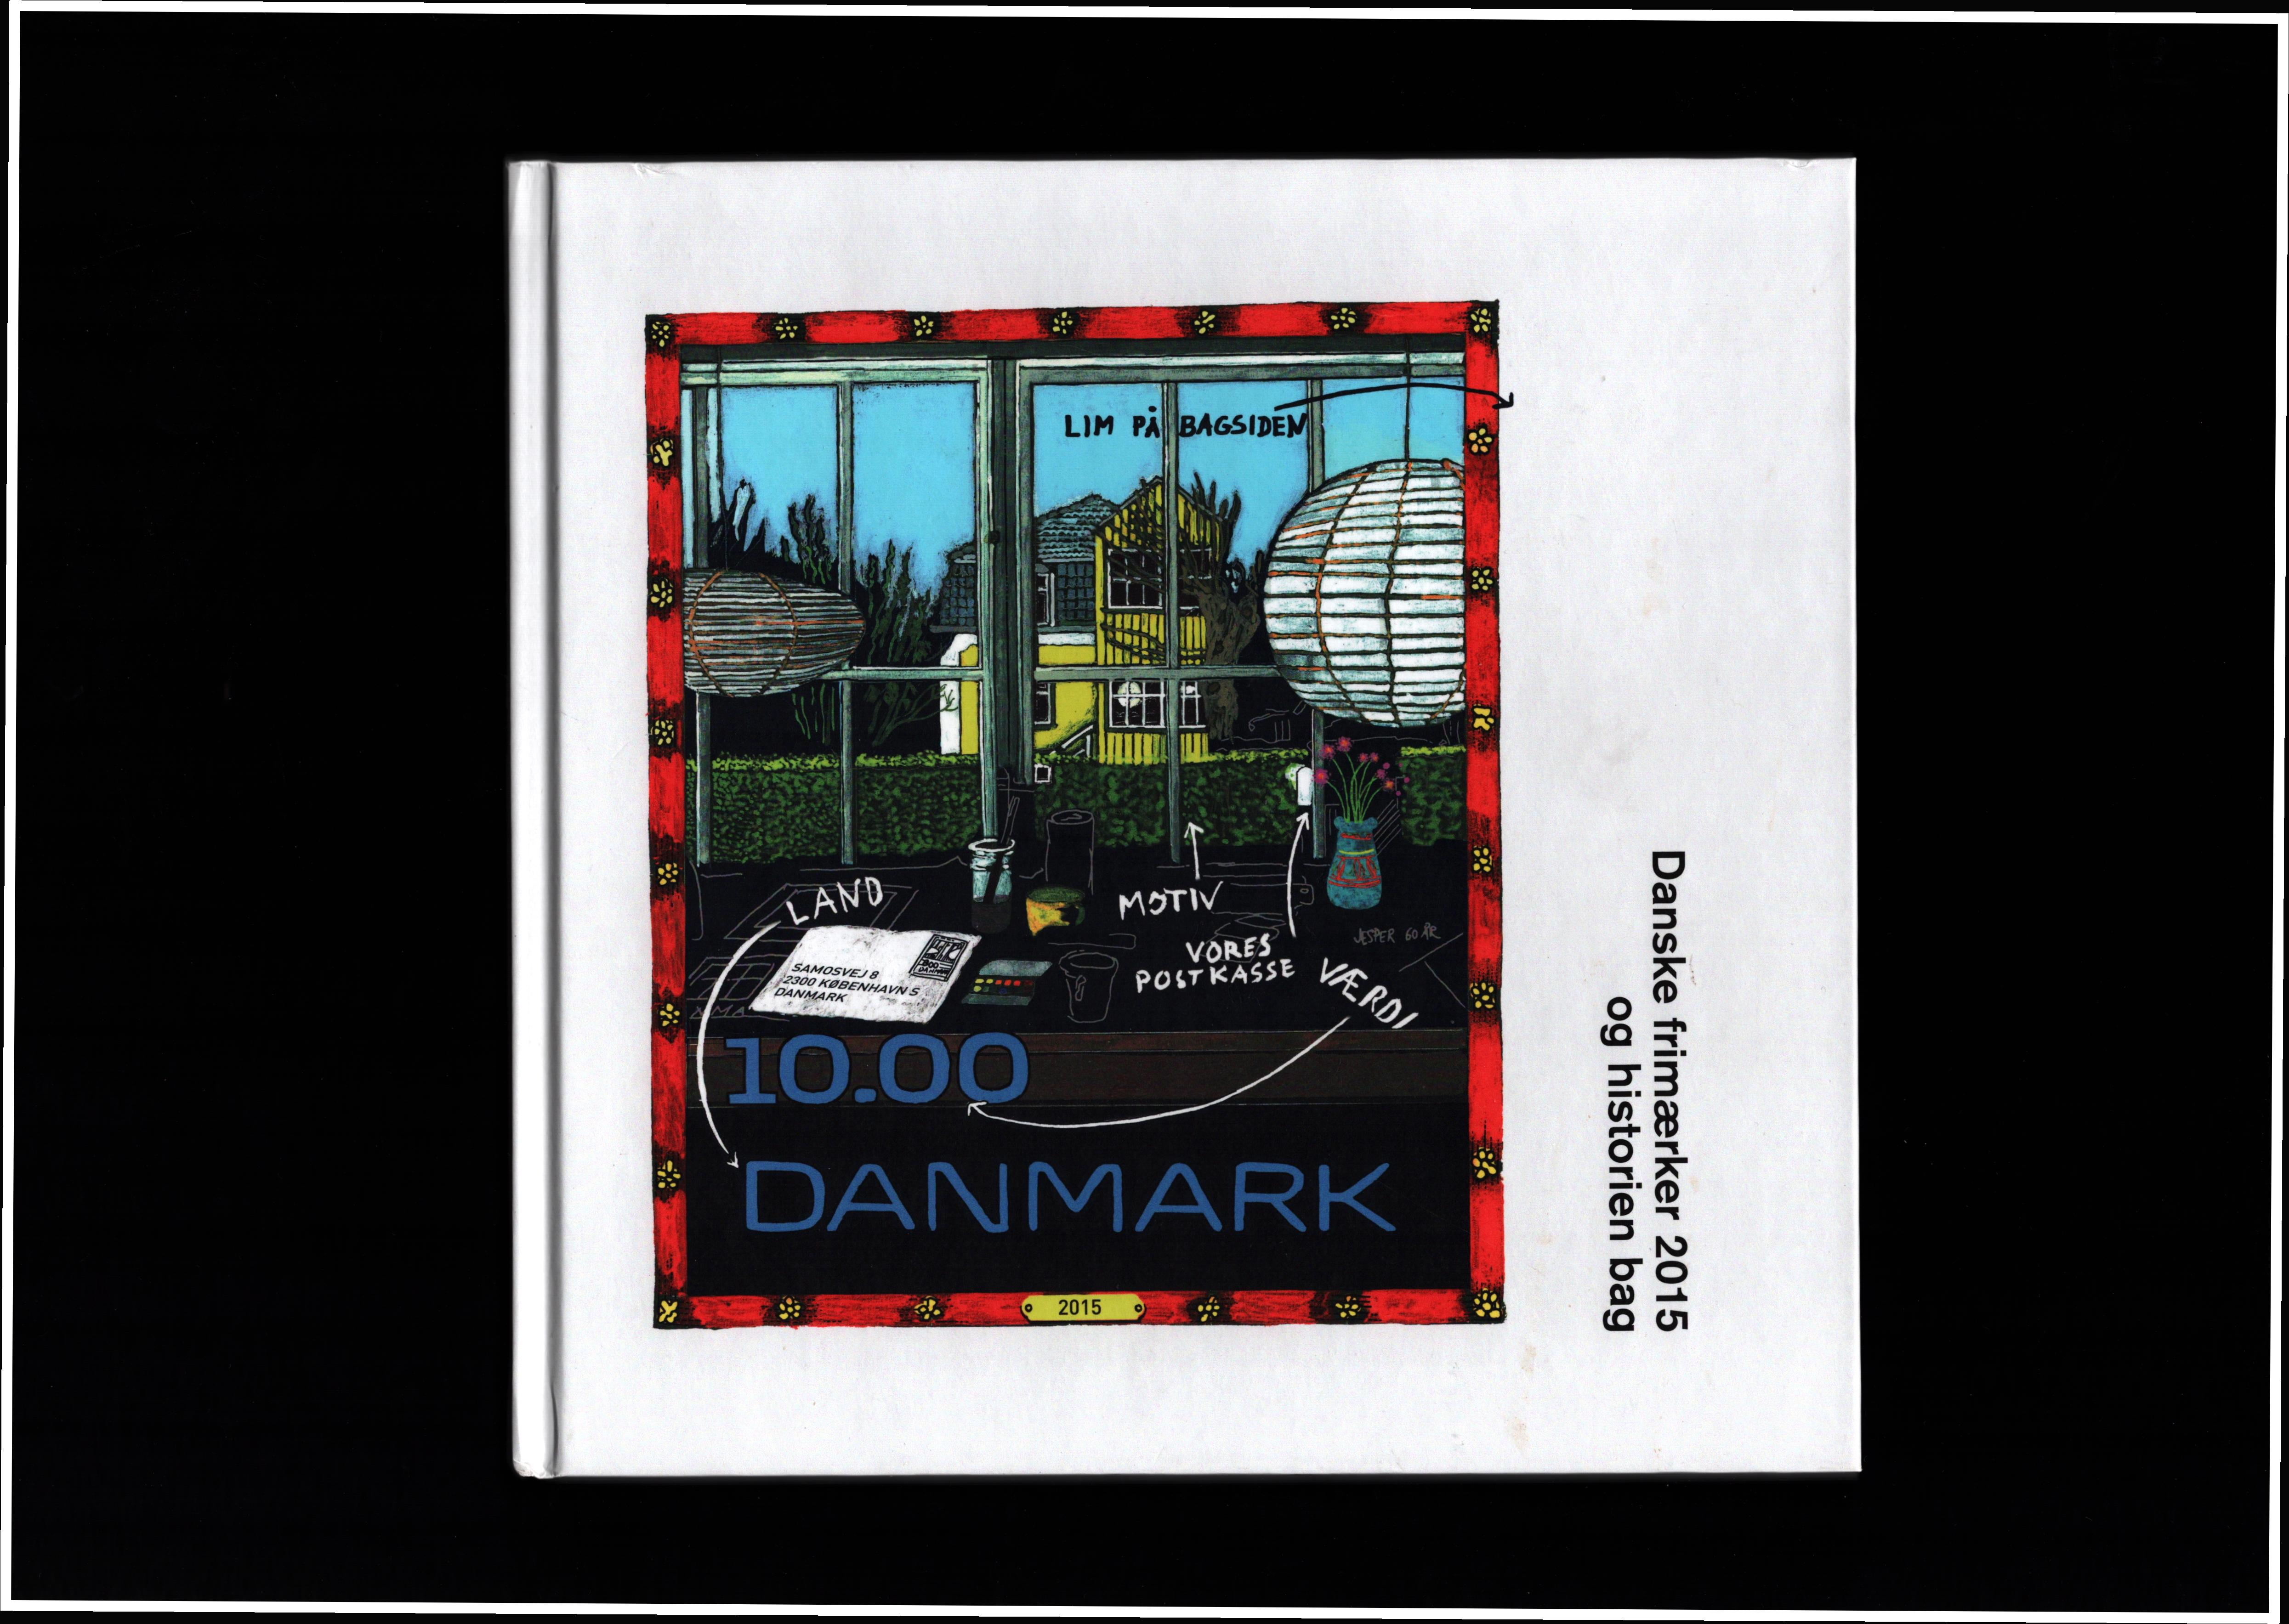 Danish 2015 stamp yearbook. Unmounted mint stamps. Good condition. We combine postage on multiple